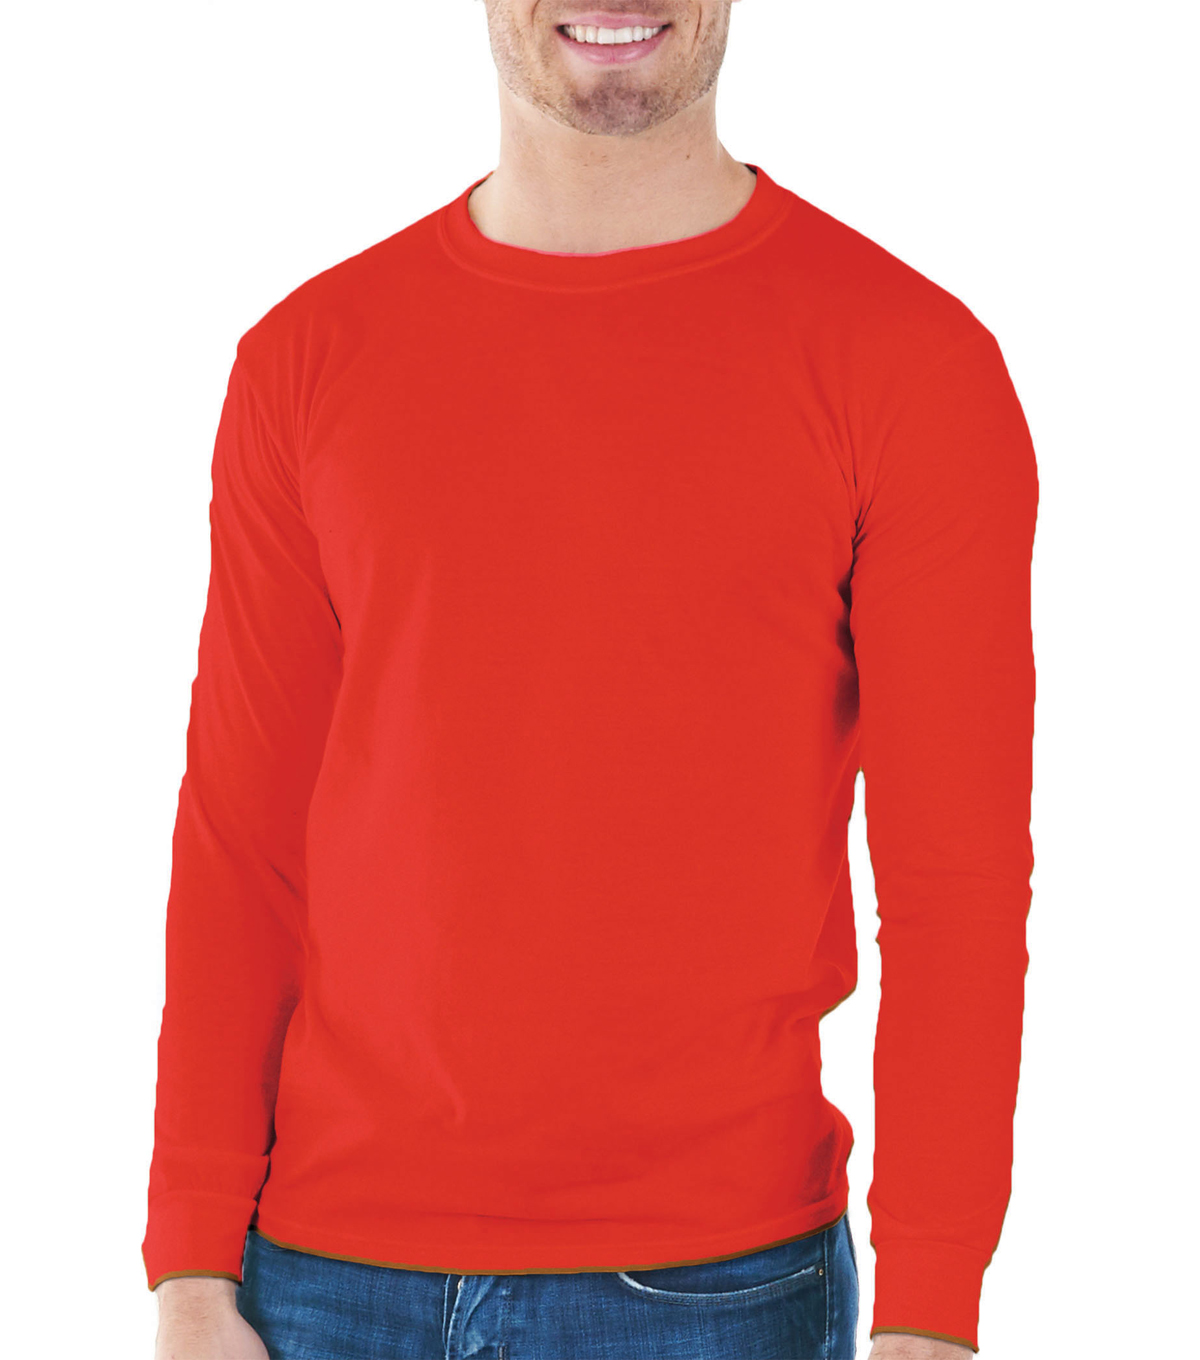 Gildan Adult Long Sleeve Tee Medium